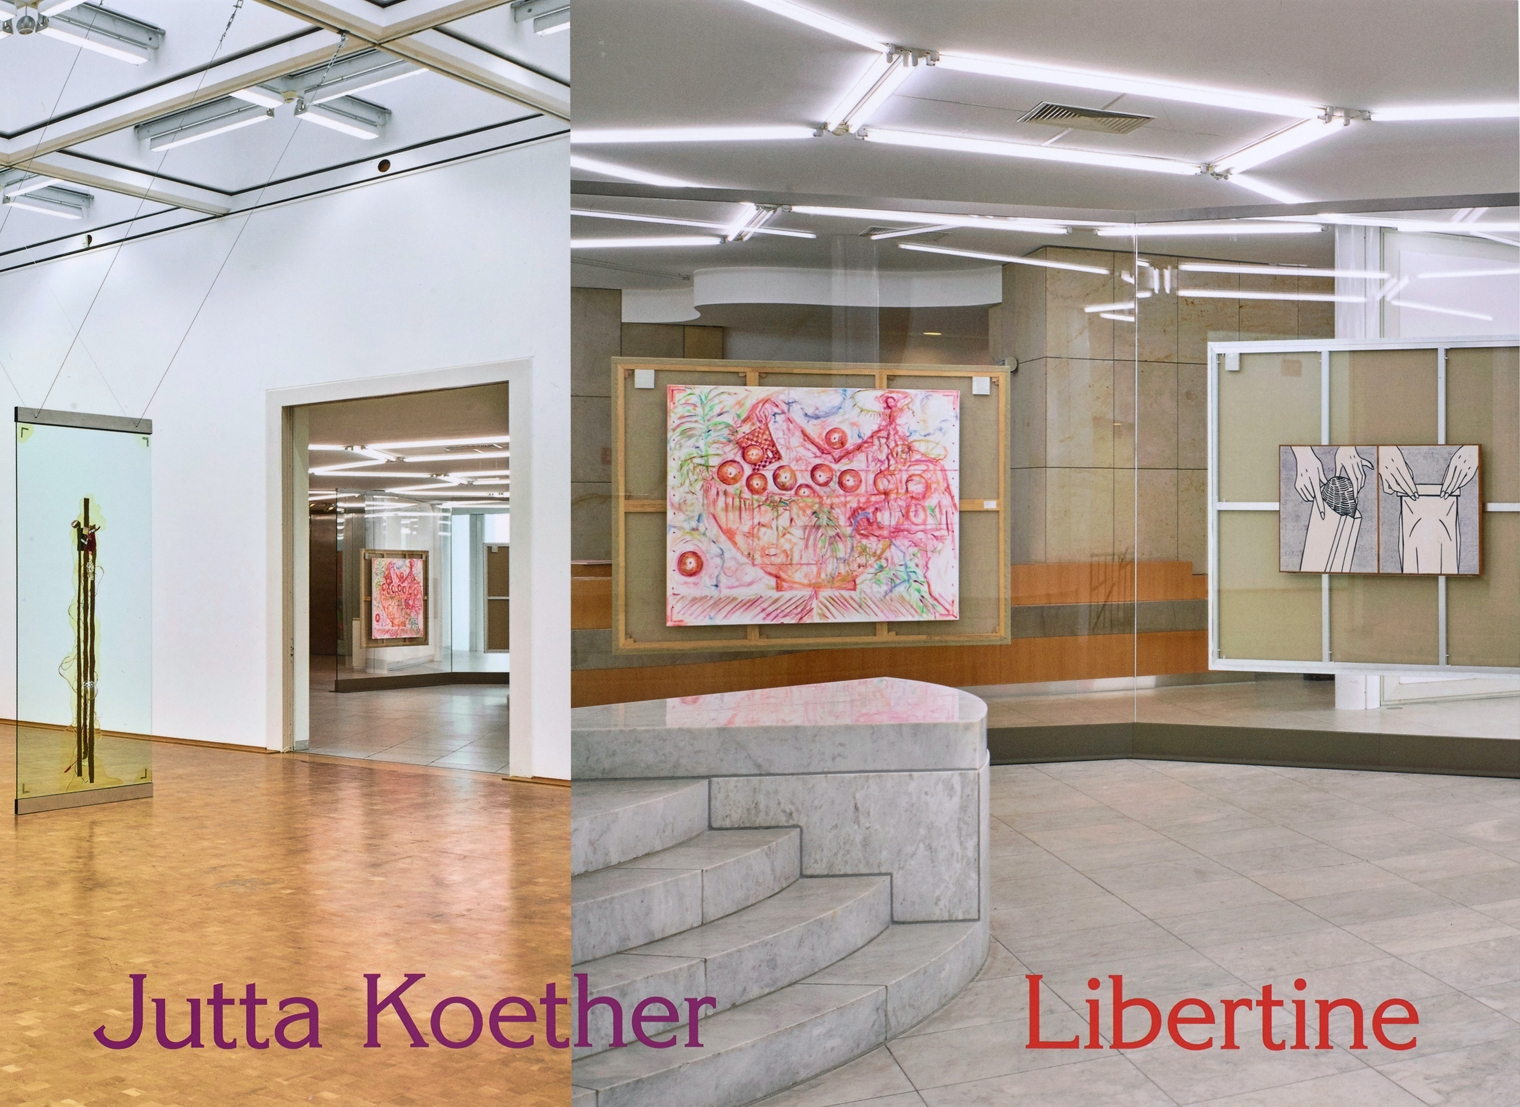 """Jutta Koether – Libertine 2020, 104 pages, Owrps, leporello, fully illustrated in color, 29 x 21 cm Euro 29,80 – Jutta Koether's new artist book, """"Libertine"""", documents and interprets her eponymous exhibition at Museum Abteiberg, a major installation that delved into the museum's history. The artist designed the book, presenting her latest series of paintings from 2018 to 2020 and their intersection with central works in the collection of Museum Abteiberg. The second part of the book contains a dossier of materials from Jutta Koether's studio. New texts by Ewa Lajer-Burcharth, Jenny Nachtigall and Nathan Stobaugh and Susanne Titz offer a comprehensive art historical exploration. The book is publsihed by Museum Abteiberg Mönchengladbach and Verlag der Buchhandlung Walther und Franz König."""